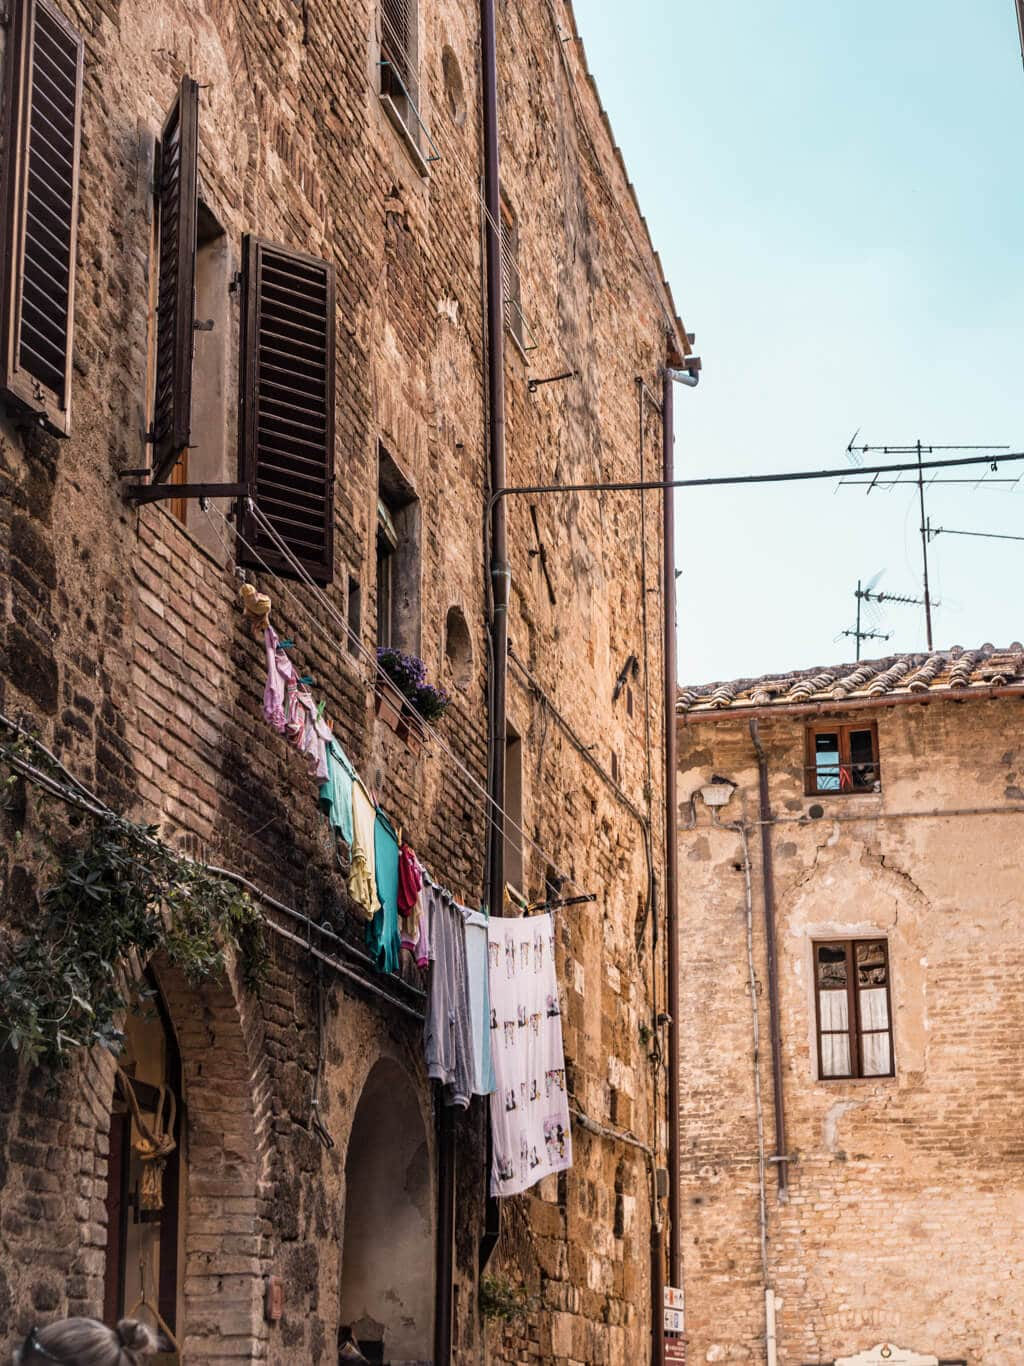 San Gimignano || A Guide For Planning A Trip To Tuscany, Italy - Things to do, including food & restaurants tips, wineries, and road trip tips